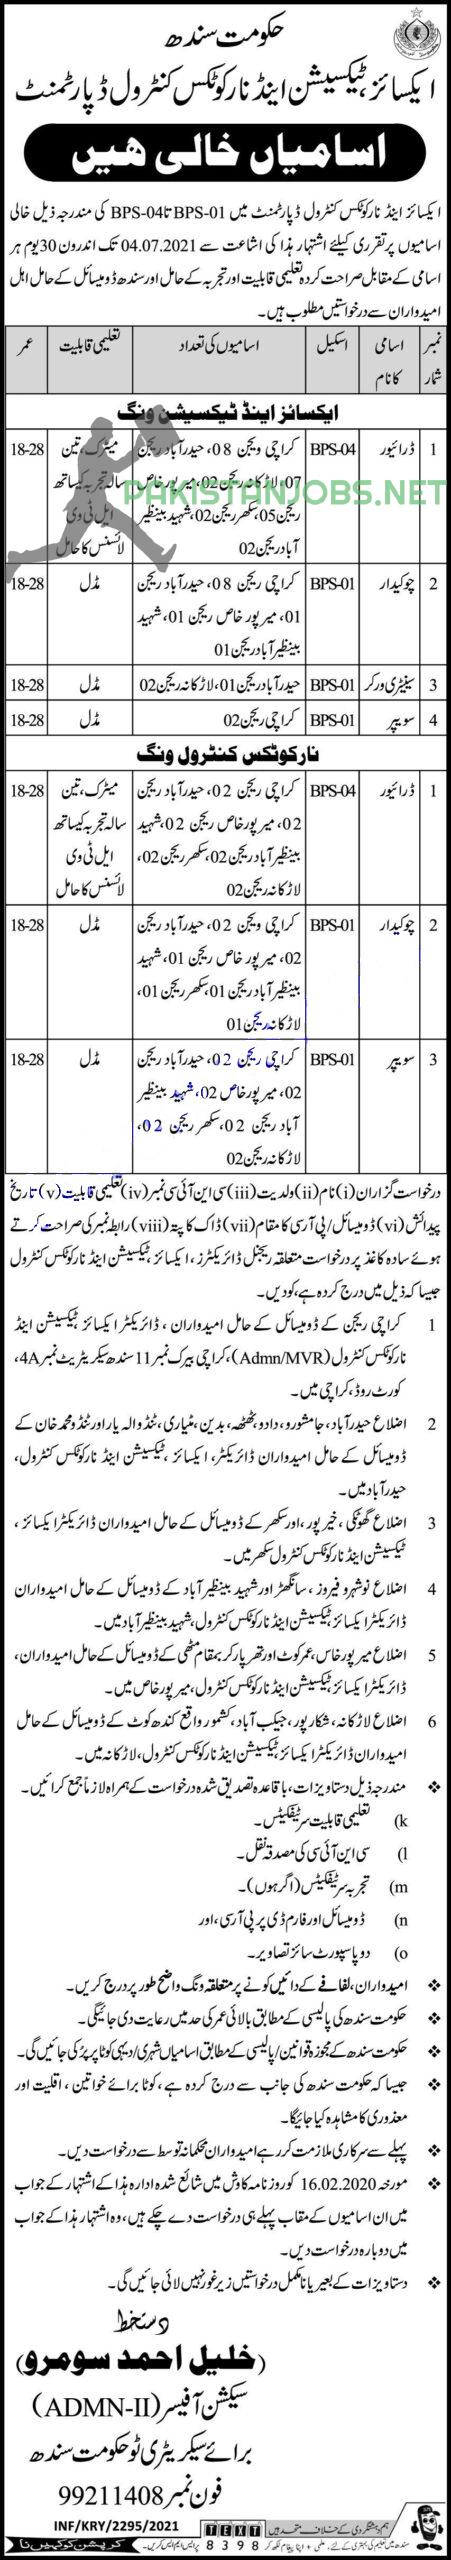 Antinortics, Excise and Taxation jobs 2021